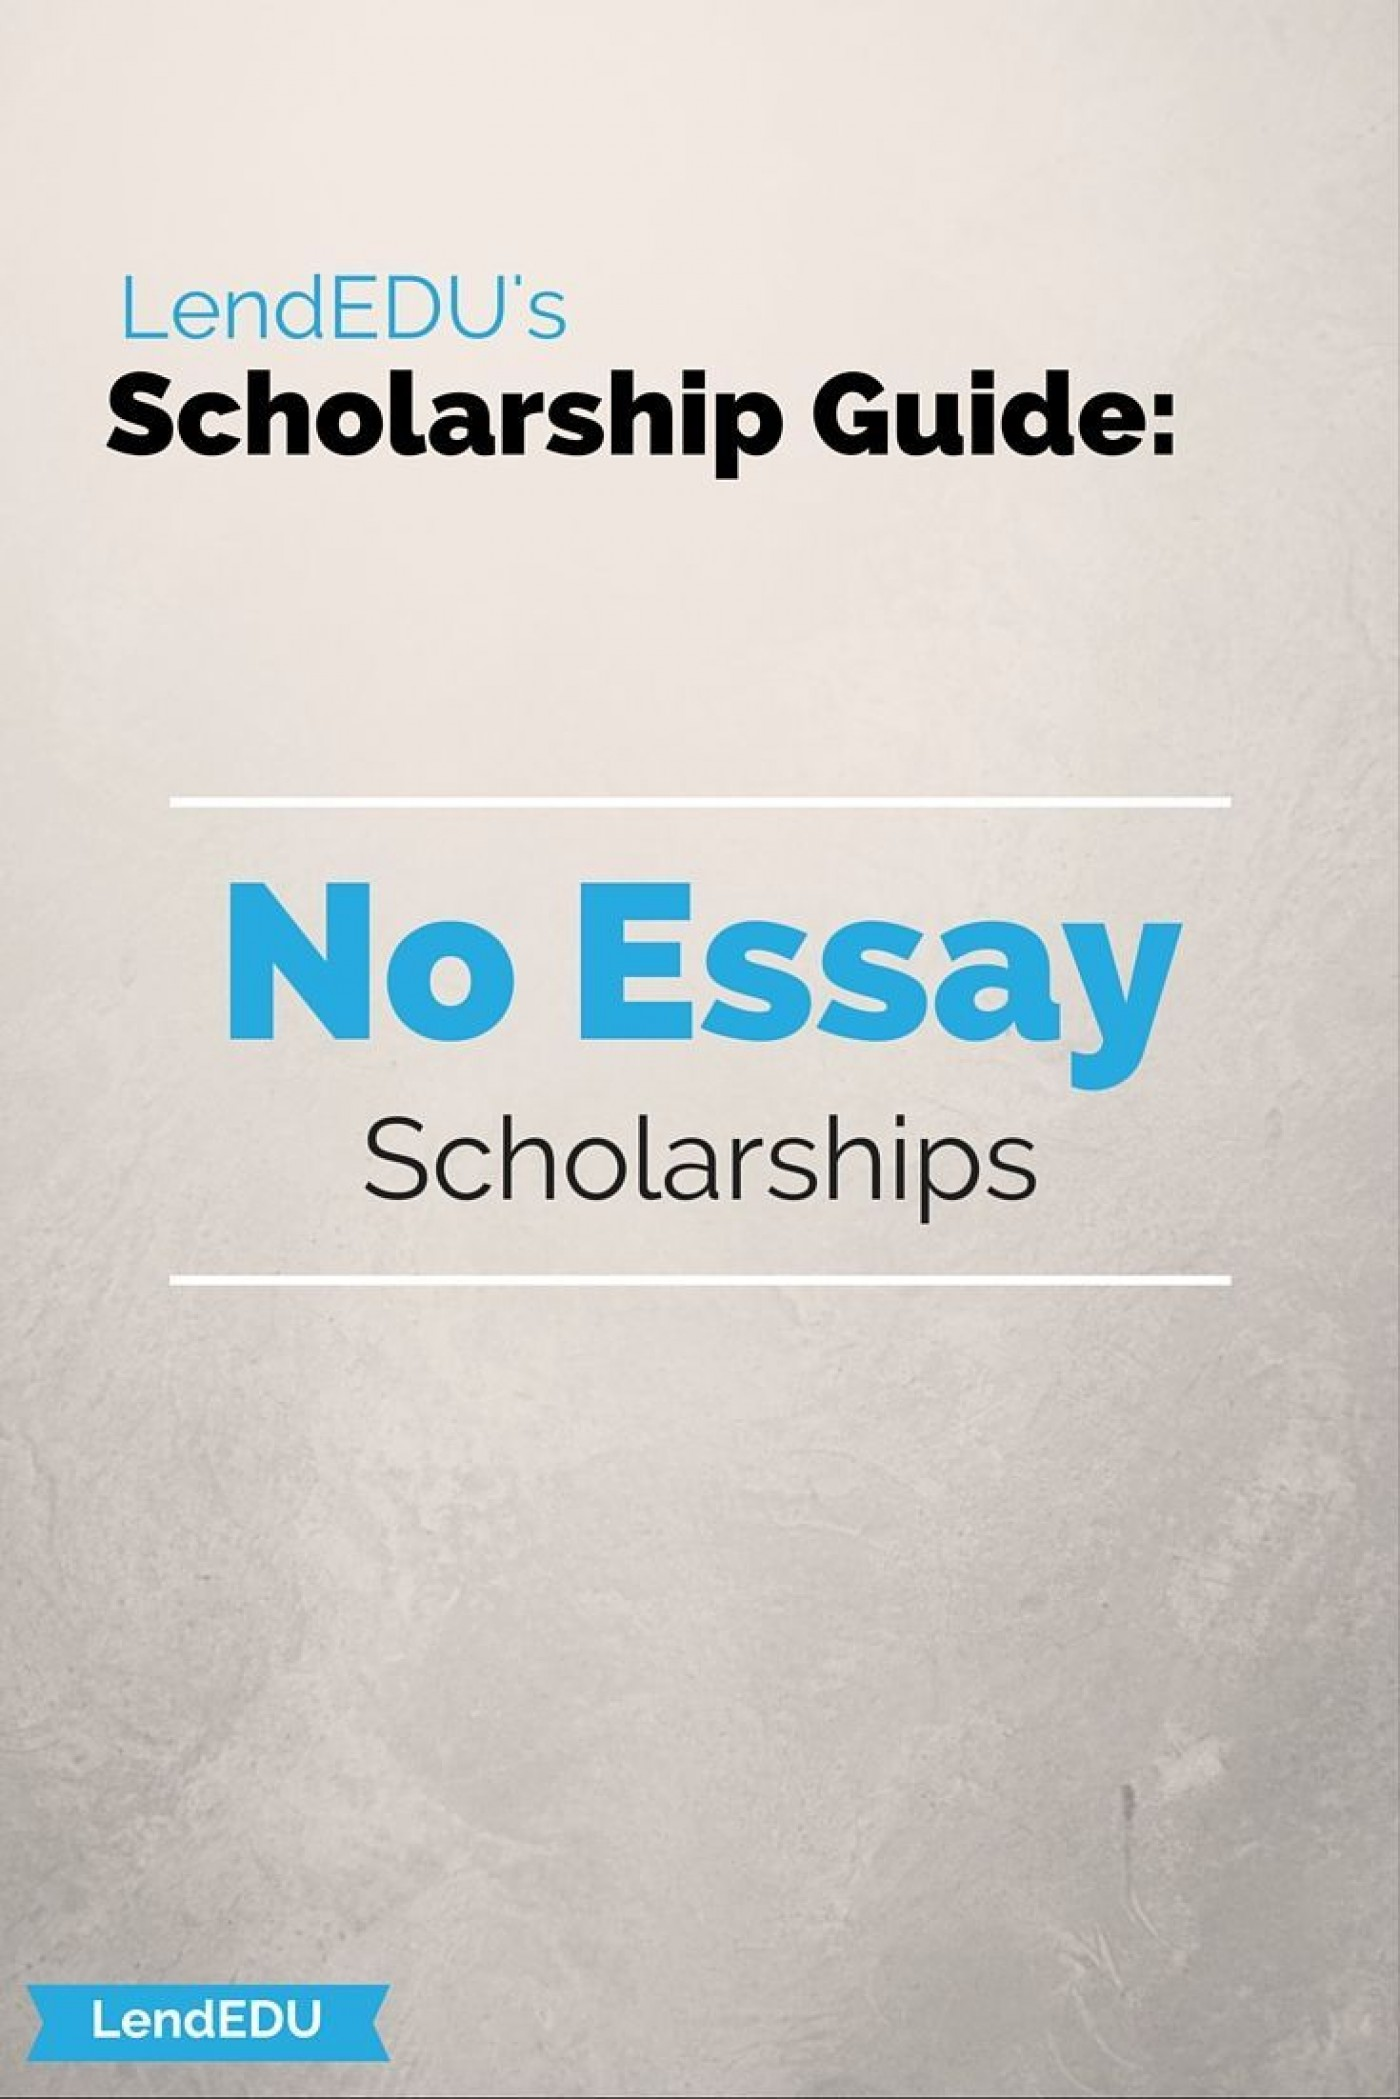 016 Essay Example No Scholarship Wondrous College Scholarships 2018 2019 Free 1400